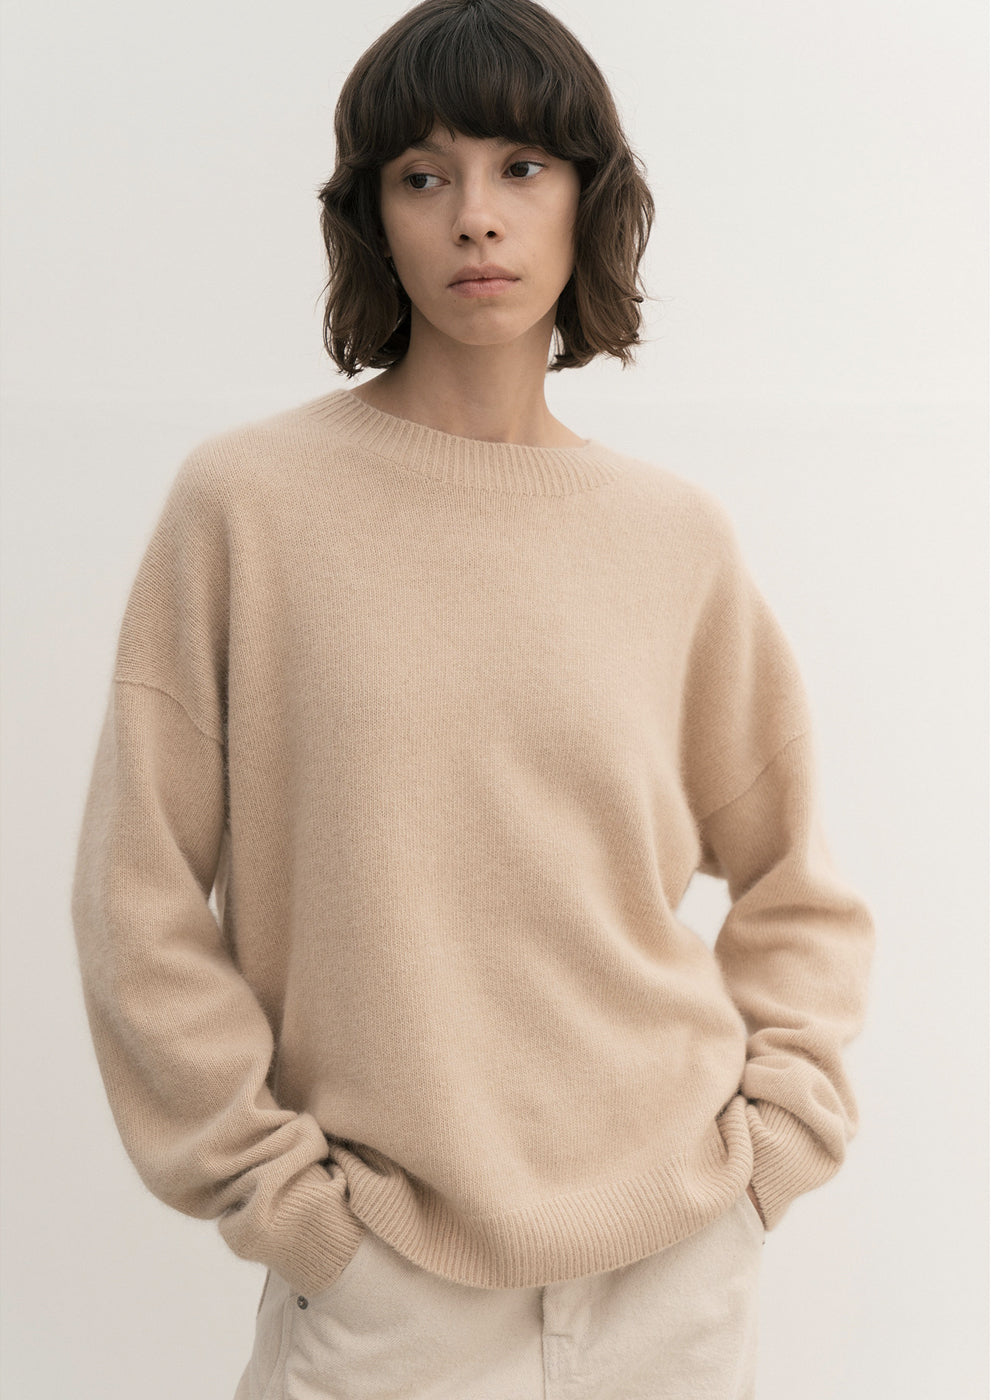 RACCOON WHOLEGARMENT ROUND SWEATER BEIGE